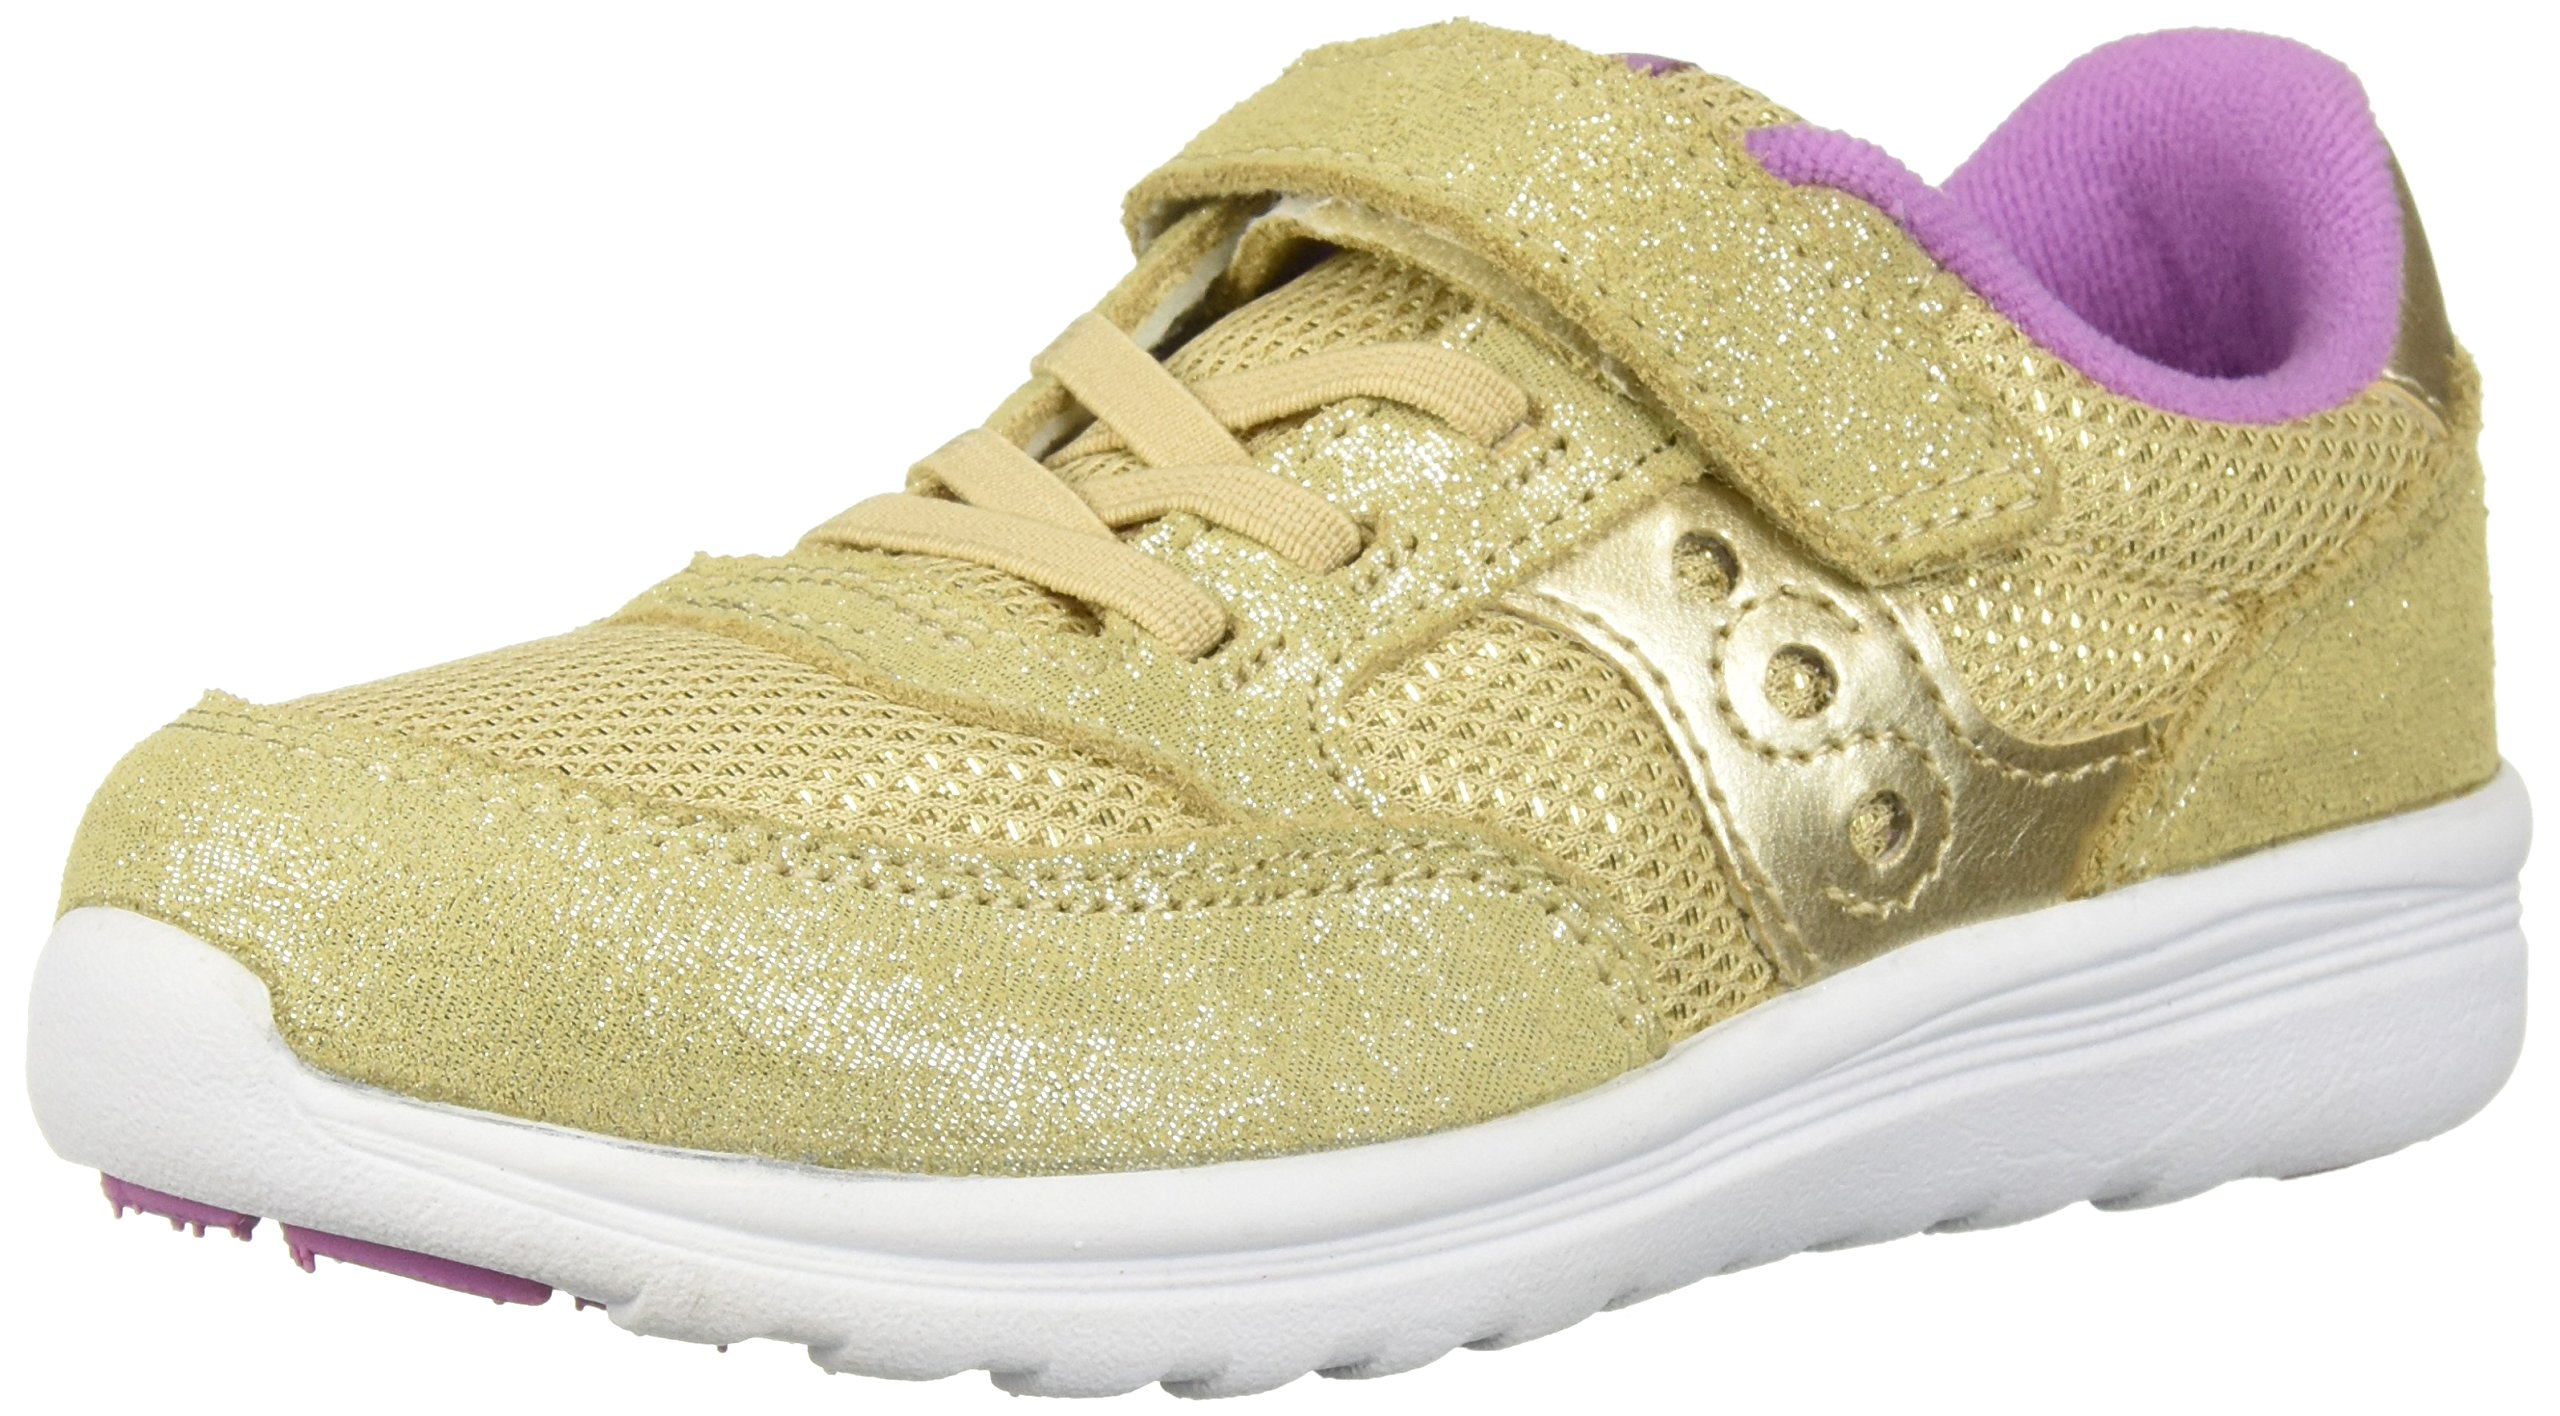 Saucony Girls' Baby Jazz Lite Sneaker, Gold